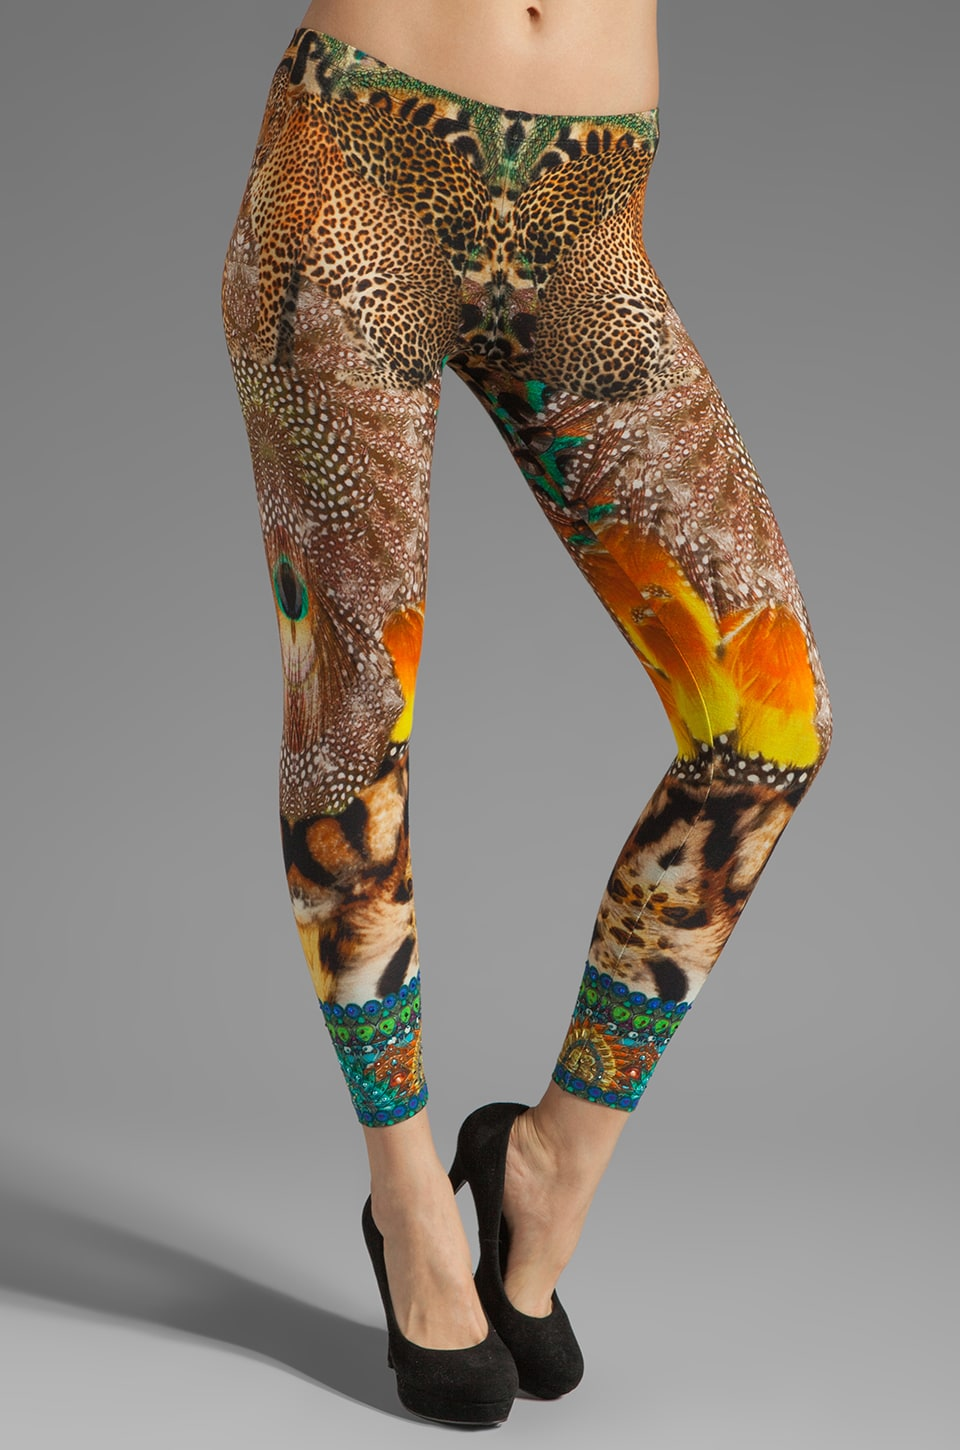 Camilla Los Pozas Legging in Surrealist Xanado